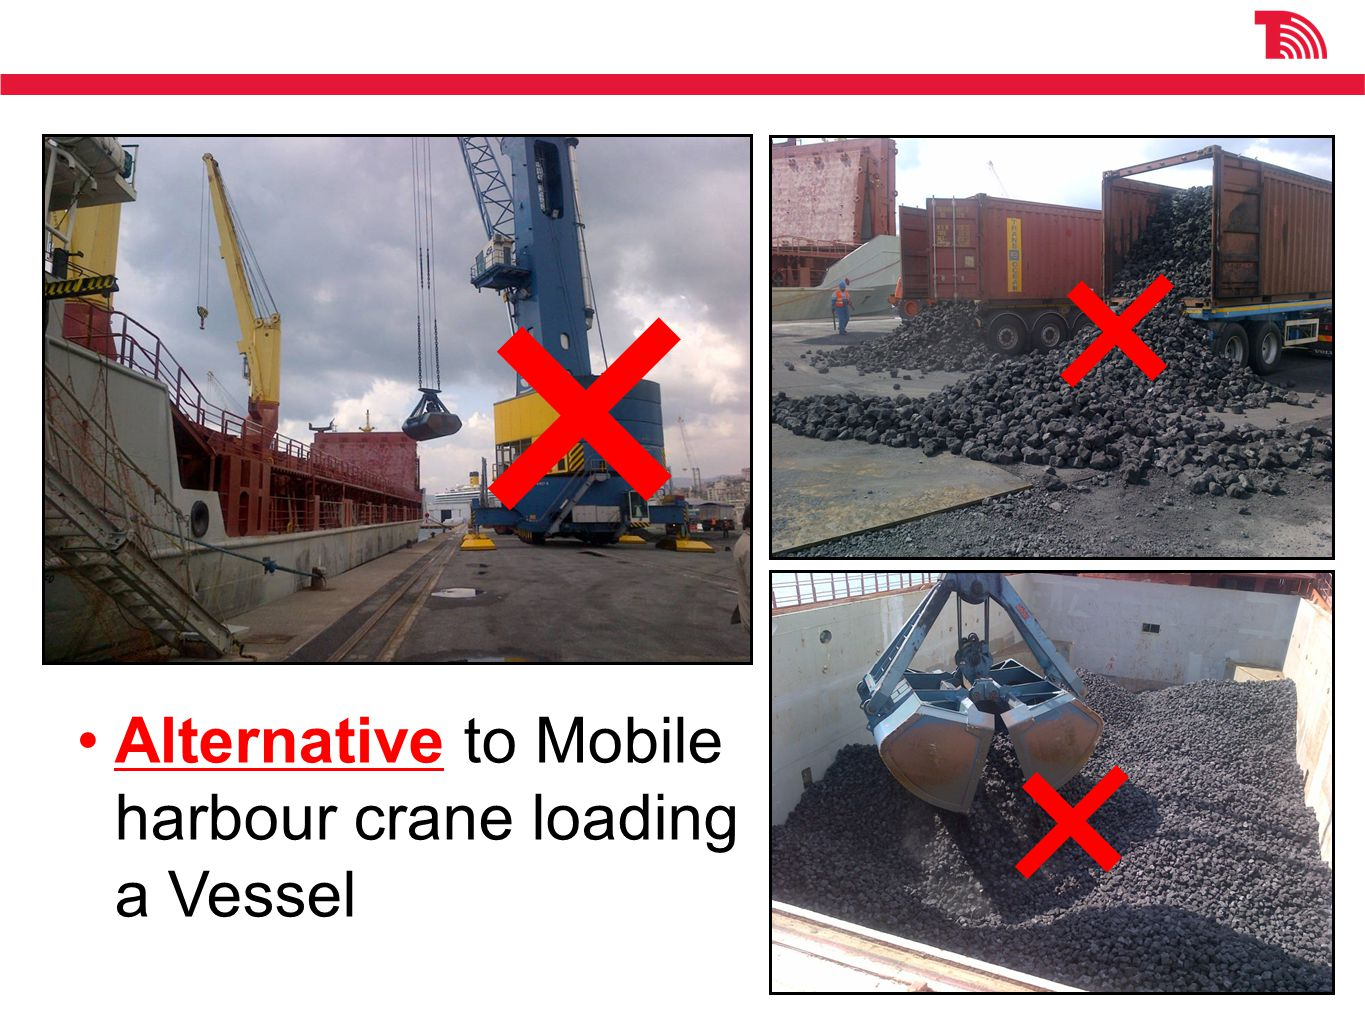 Alternative to Mobile harbour crane loading a Vessel